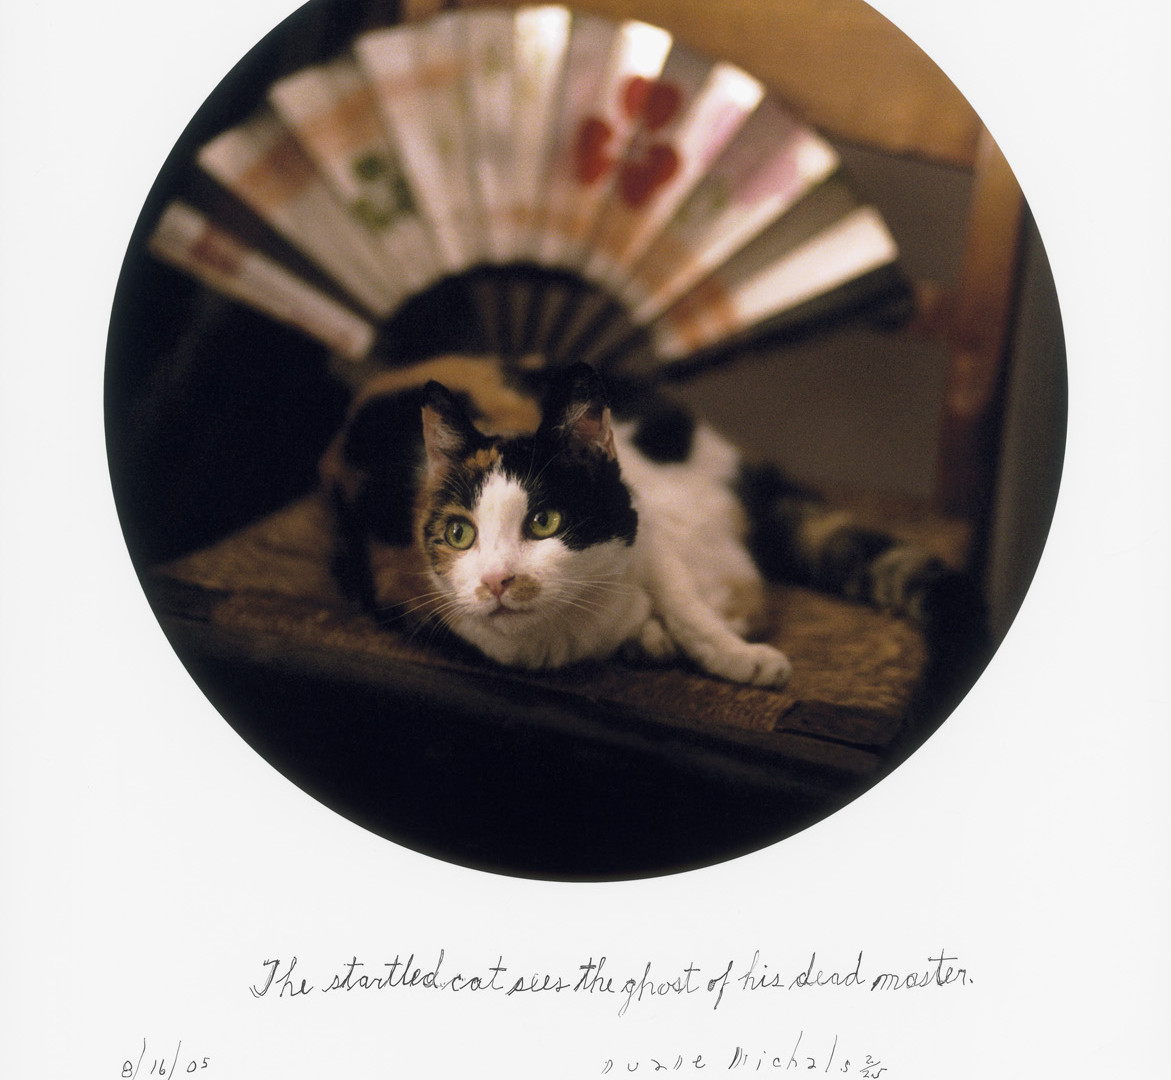 Duane Michals, The startled cat sees the ghost of his dead master, 8/16/05